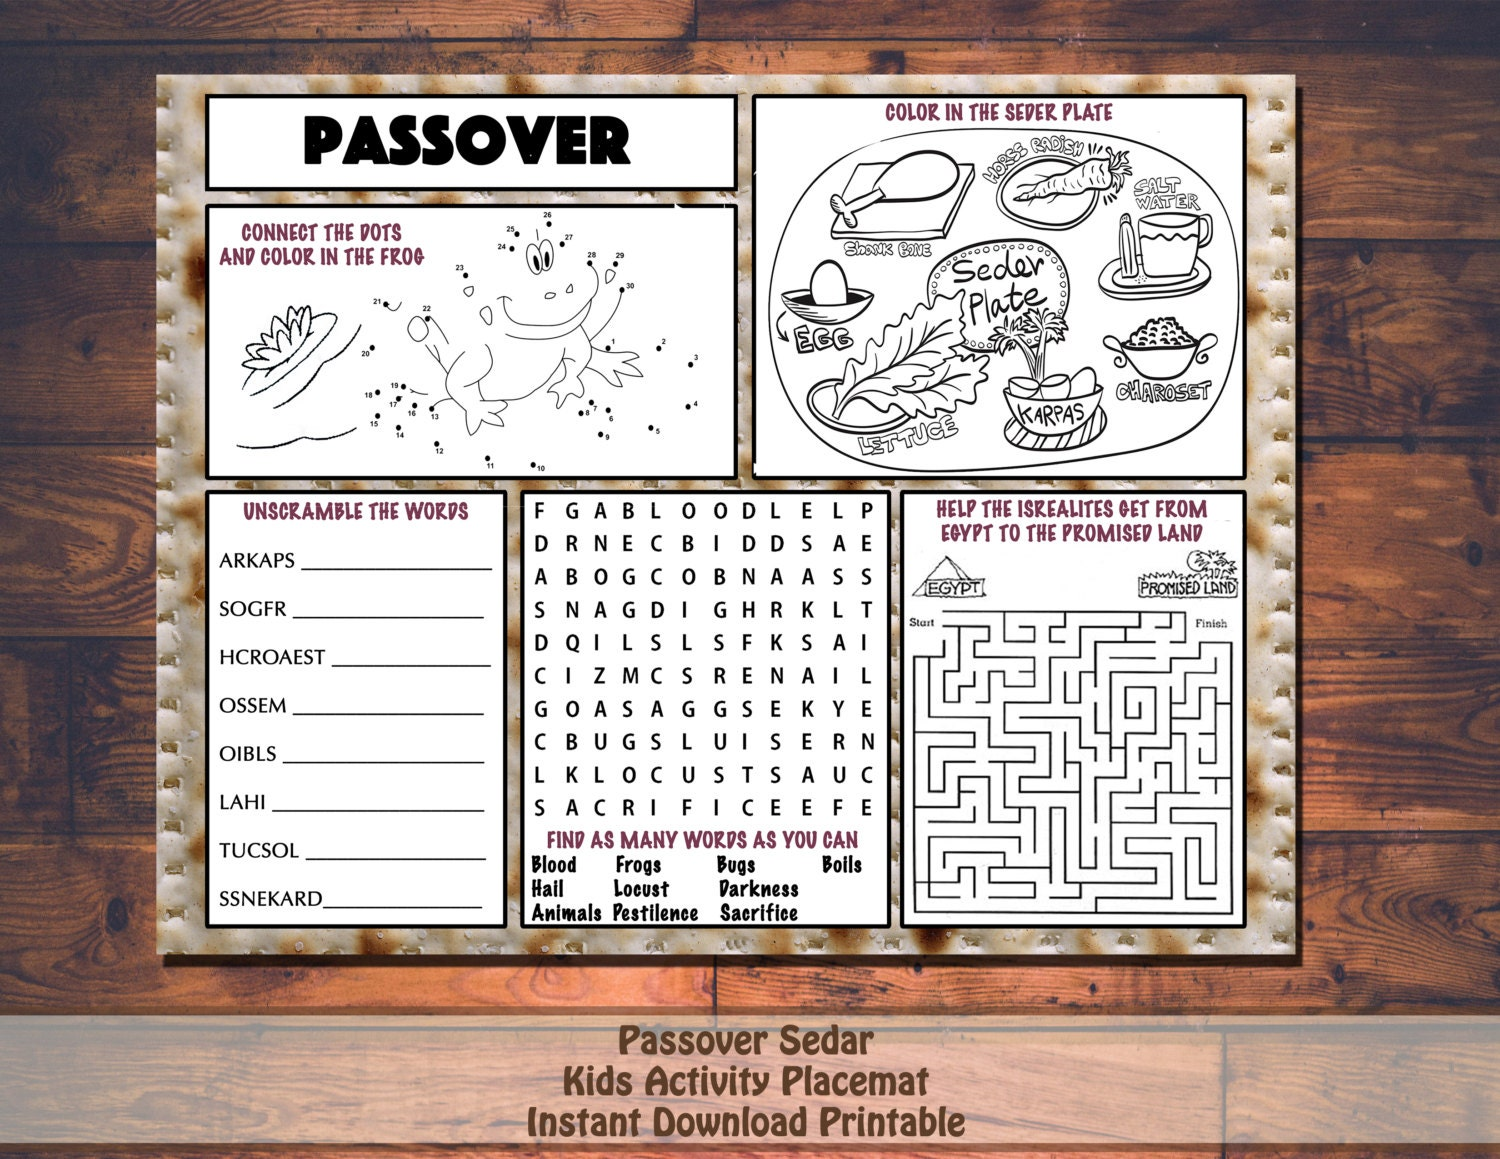 Divine image pertaining to children's passover seder printable